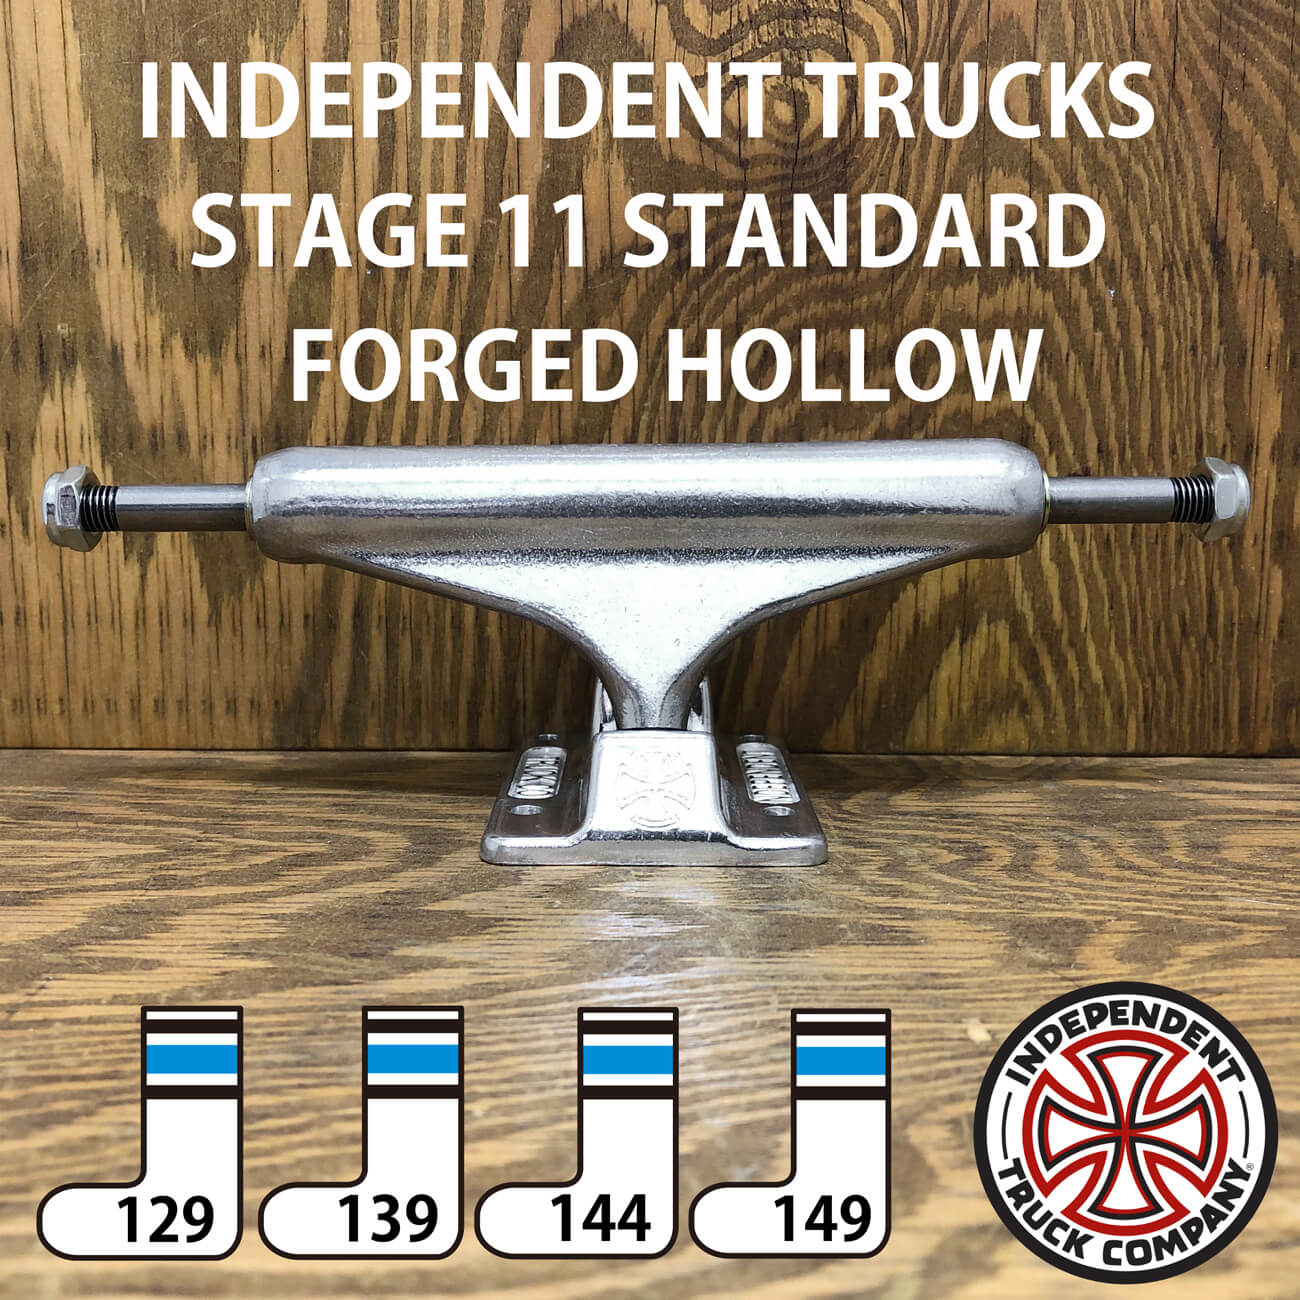 INDEPENDENT STAGE11 FORGED HOLLOW SILVER STANDARD TRUCKS 129-149